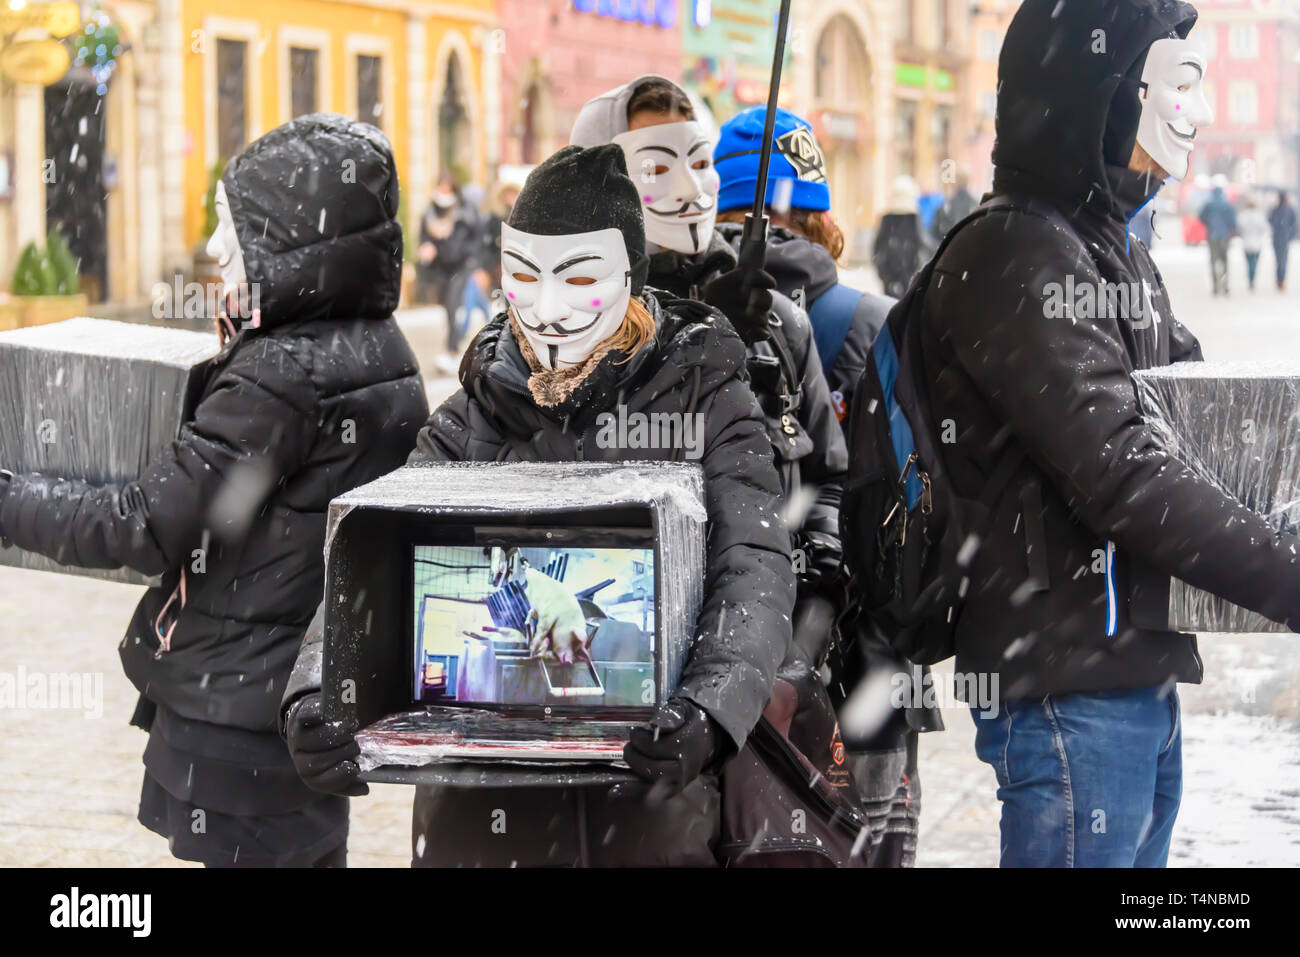 Vegan activists display videos of animals getting slaughtered, Wrocław, Wroclaw, Wroklaw, Poland - Stock Image